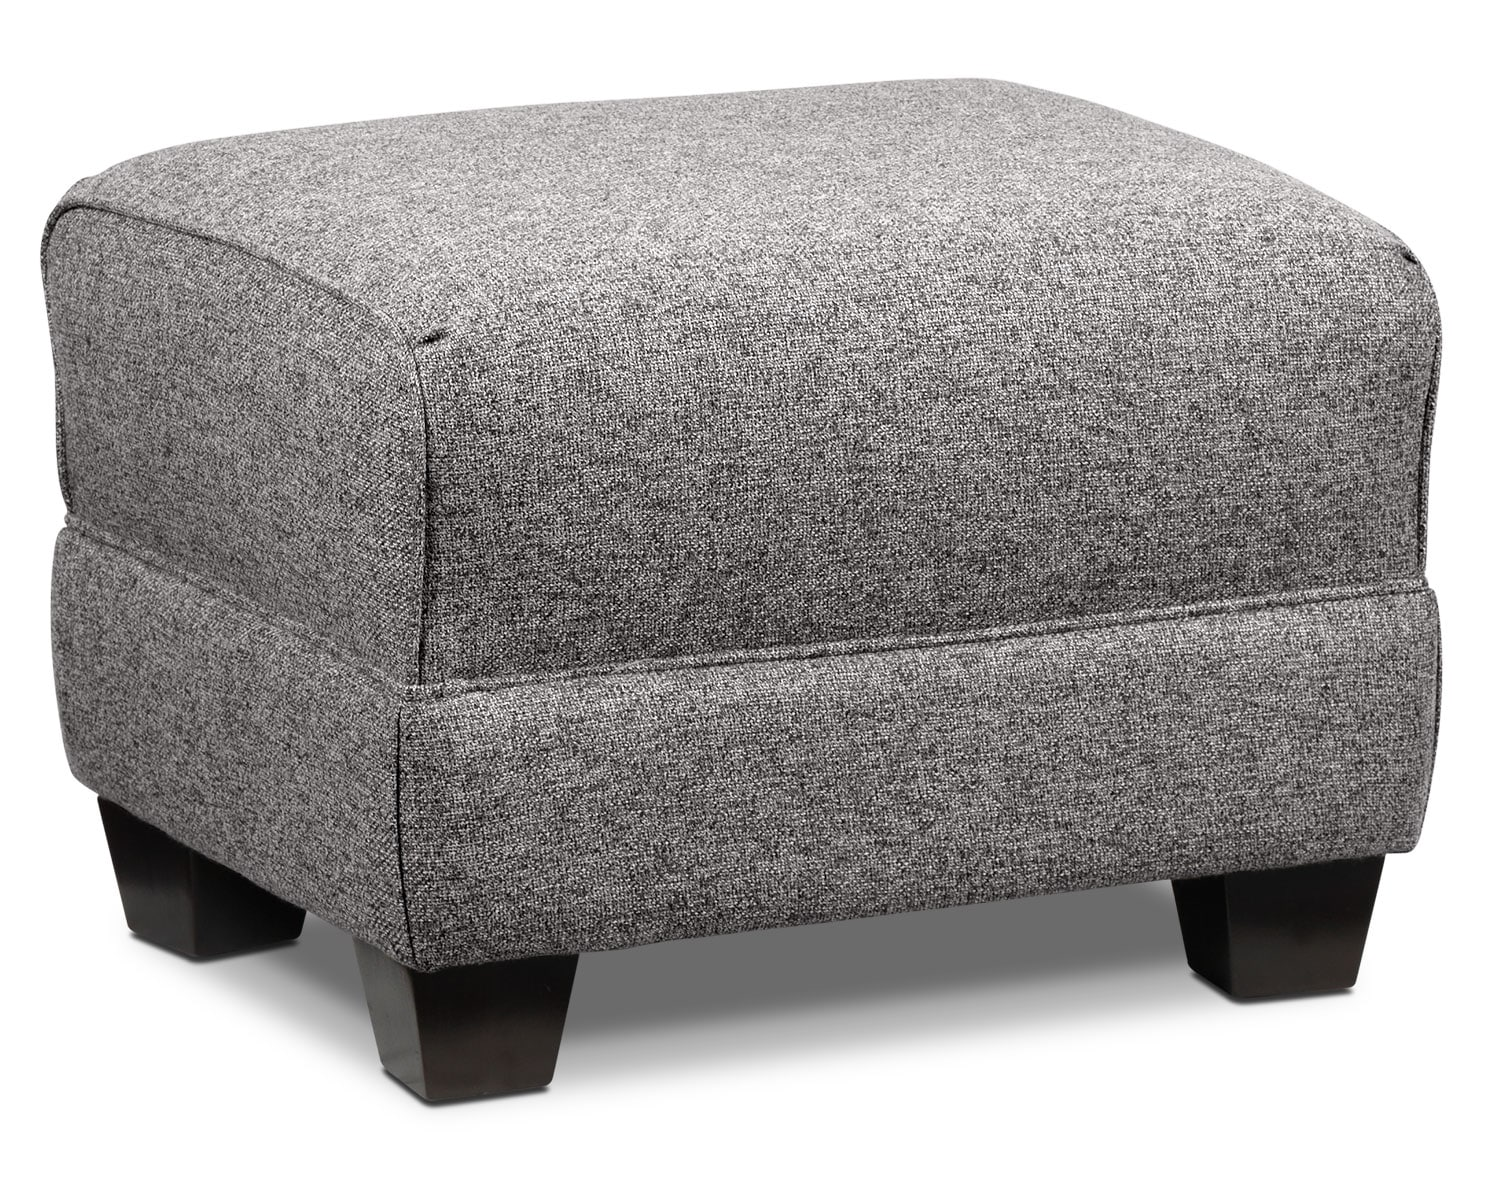 Living Room Furniture - Ashby Ottoman - Oreo